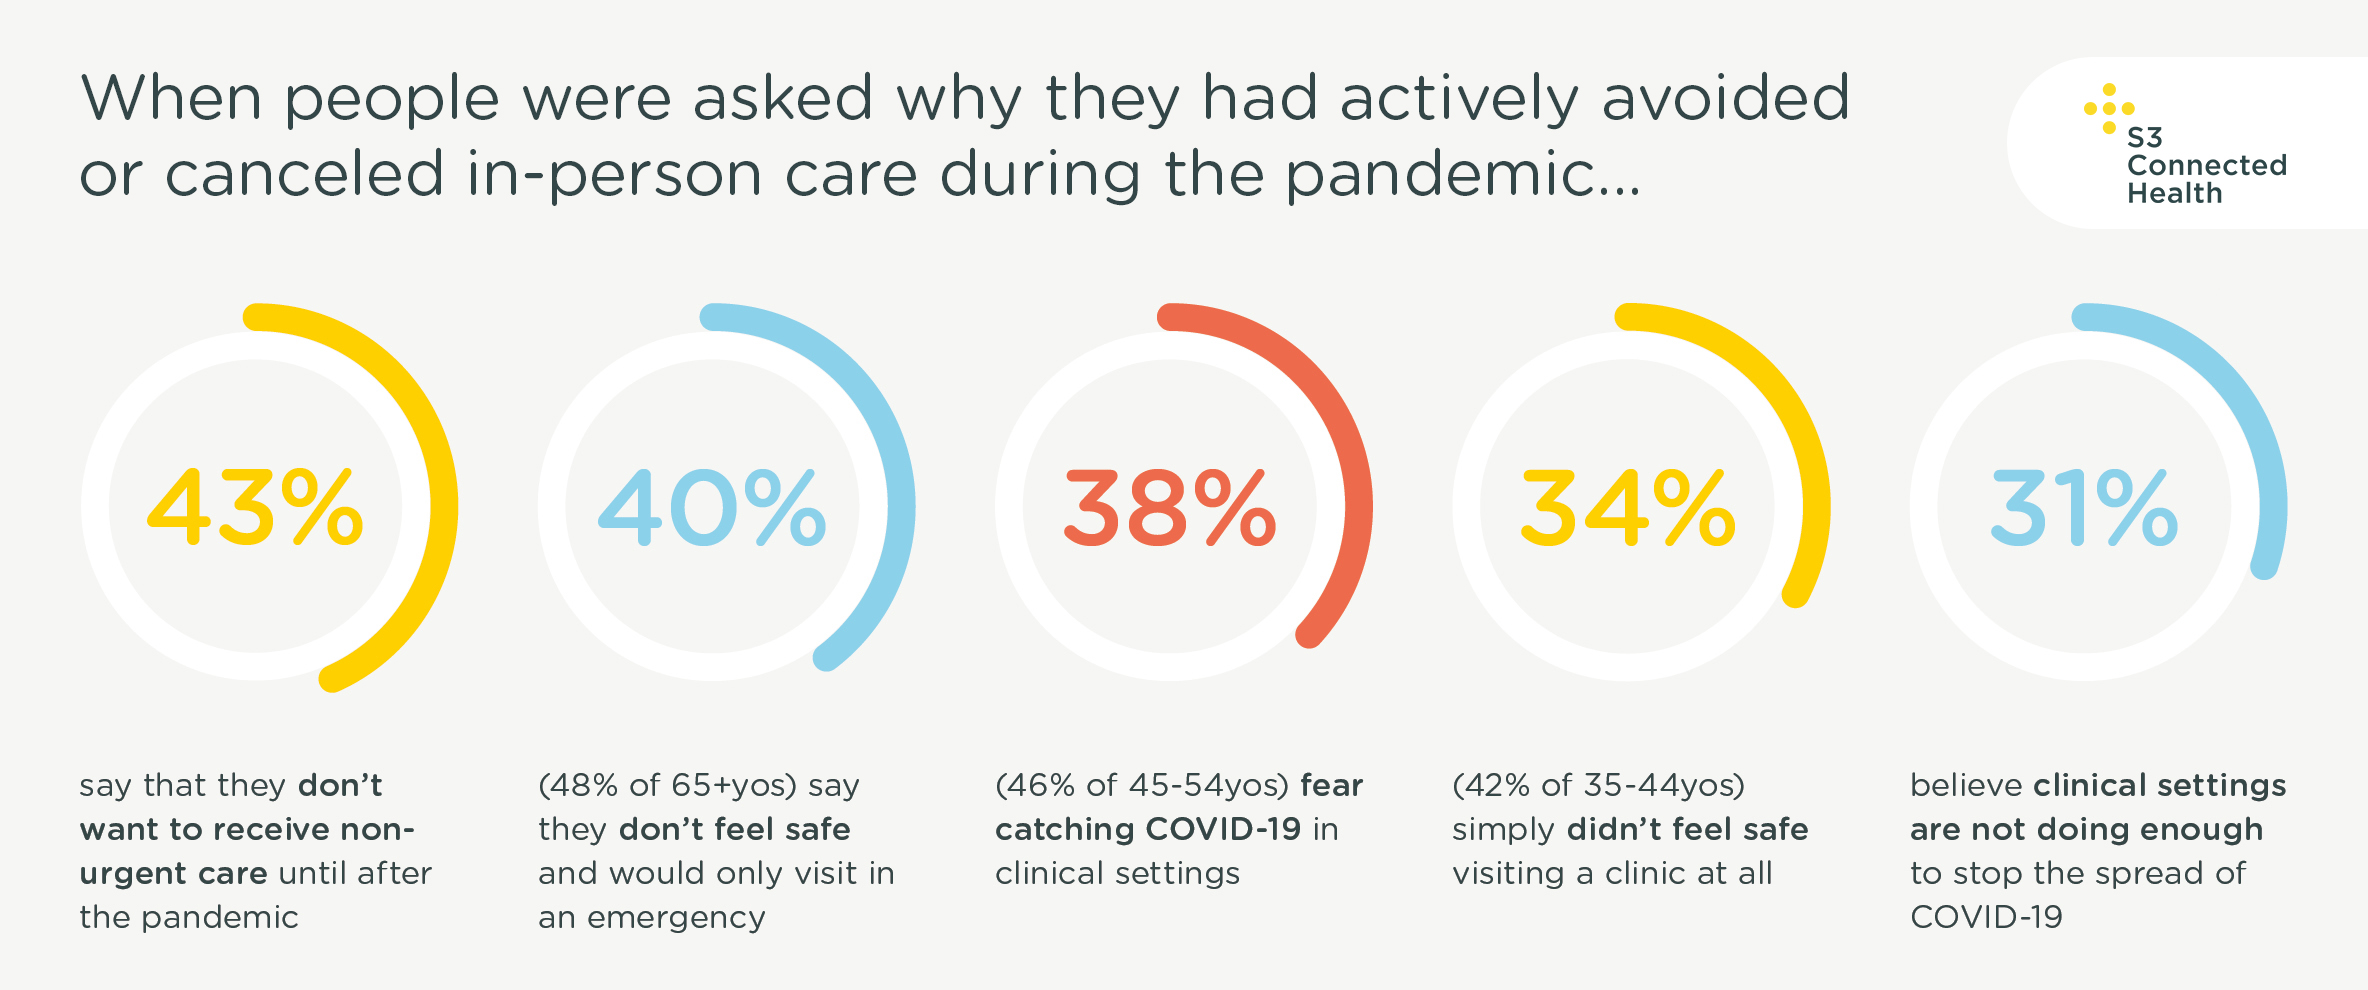 pandemic care appointments 2020